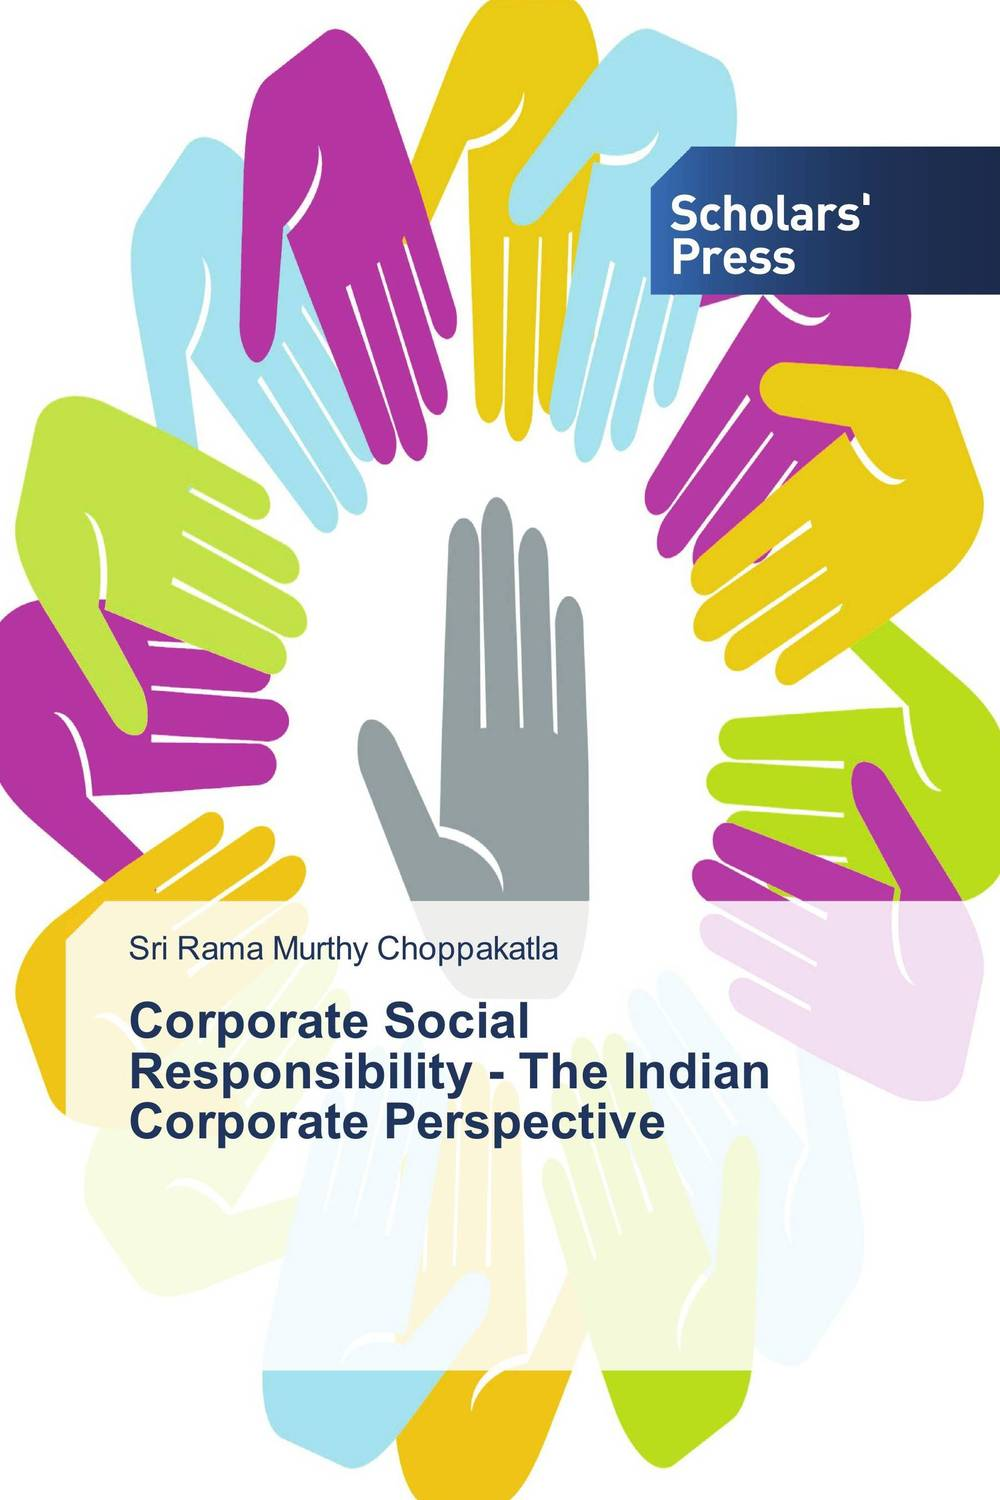 Corporate Social Responsibility - The Indian Corporate Perspective corporate governance and firm value